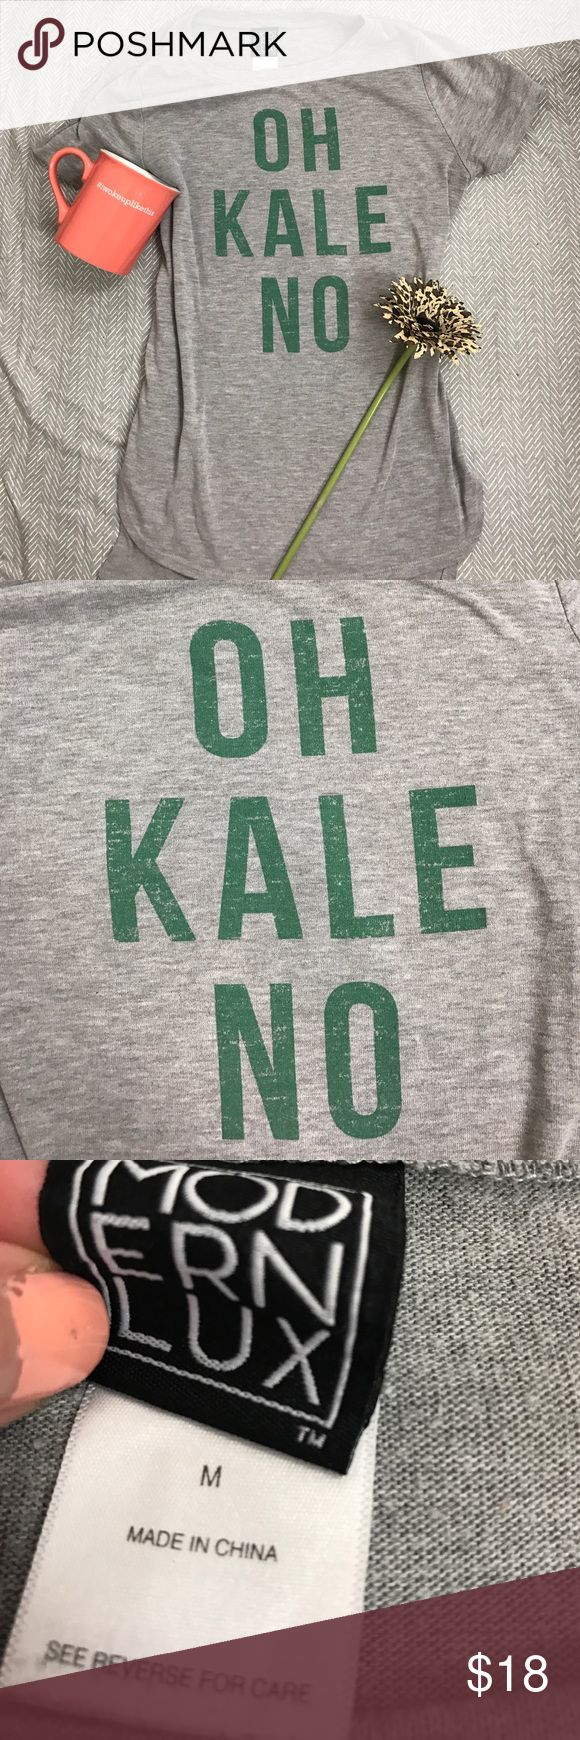 Oh kale no graphic funny tee Mod ern lux medium grey tee with green oh kale no lettering. The back of shift is longer than the front. Tops Tees - Short Sleeve